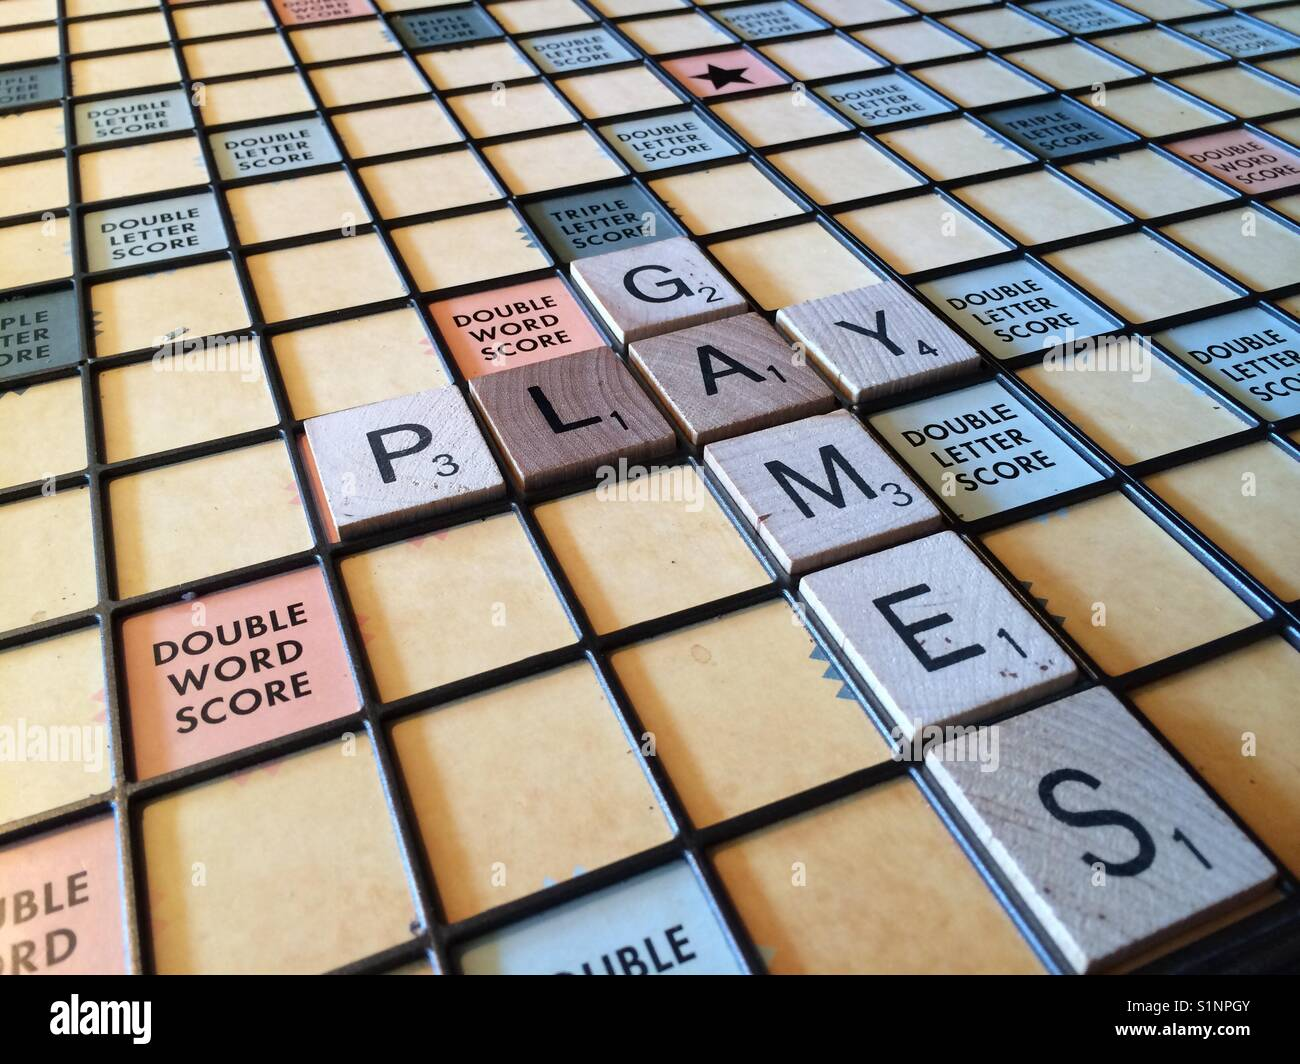 The words 'play games' on a Scrabble board - Stock Image